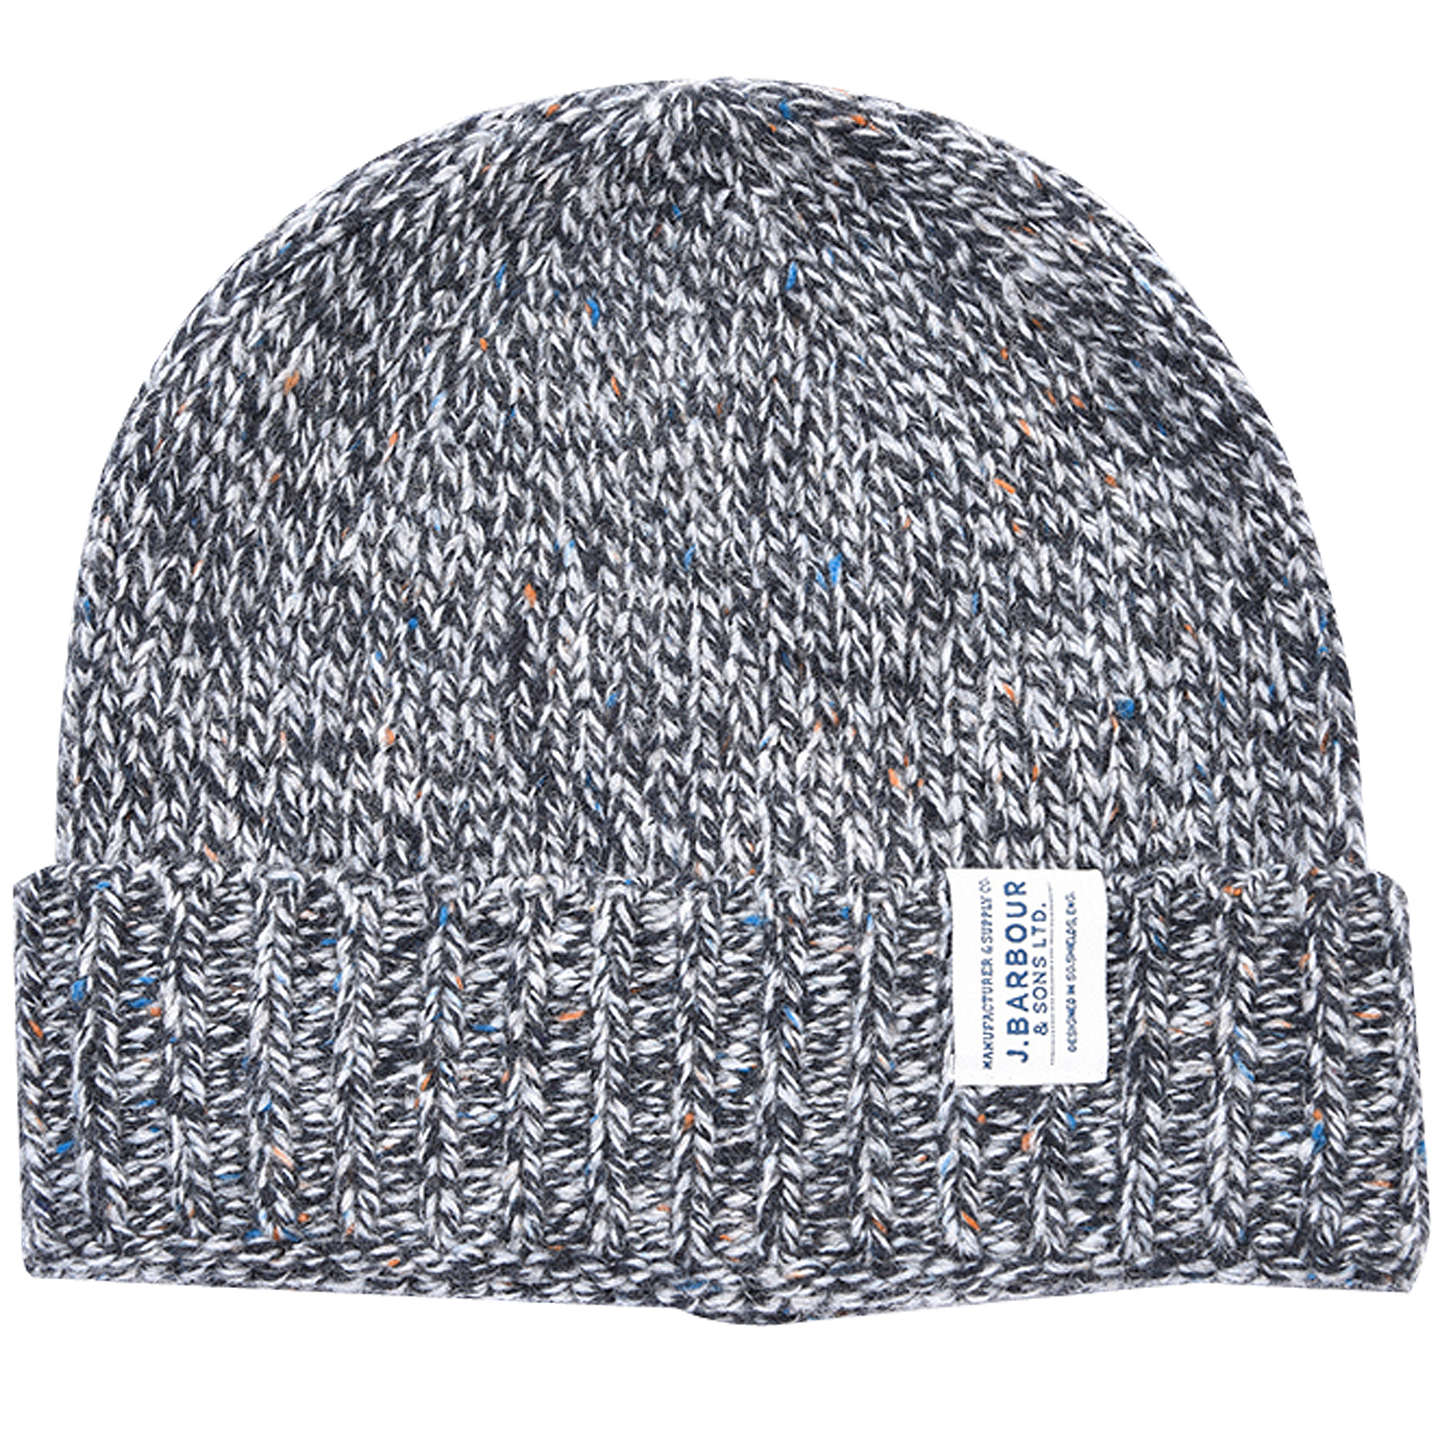 BuyBarbour Whitfield Beanie Hat, One Size, Grey Online at johnlewis.com